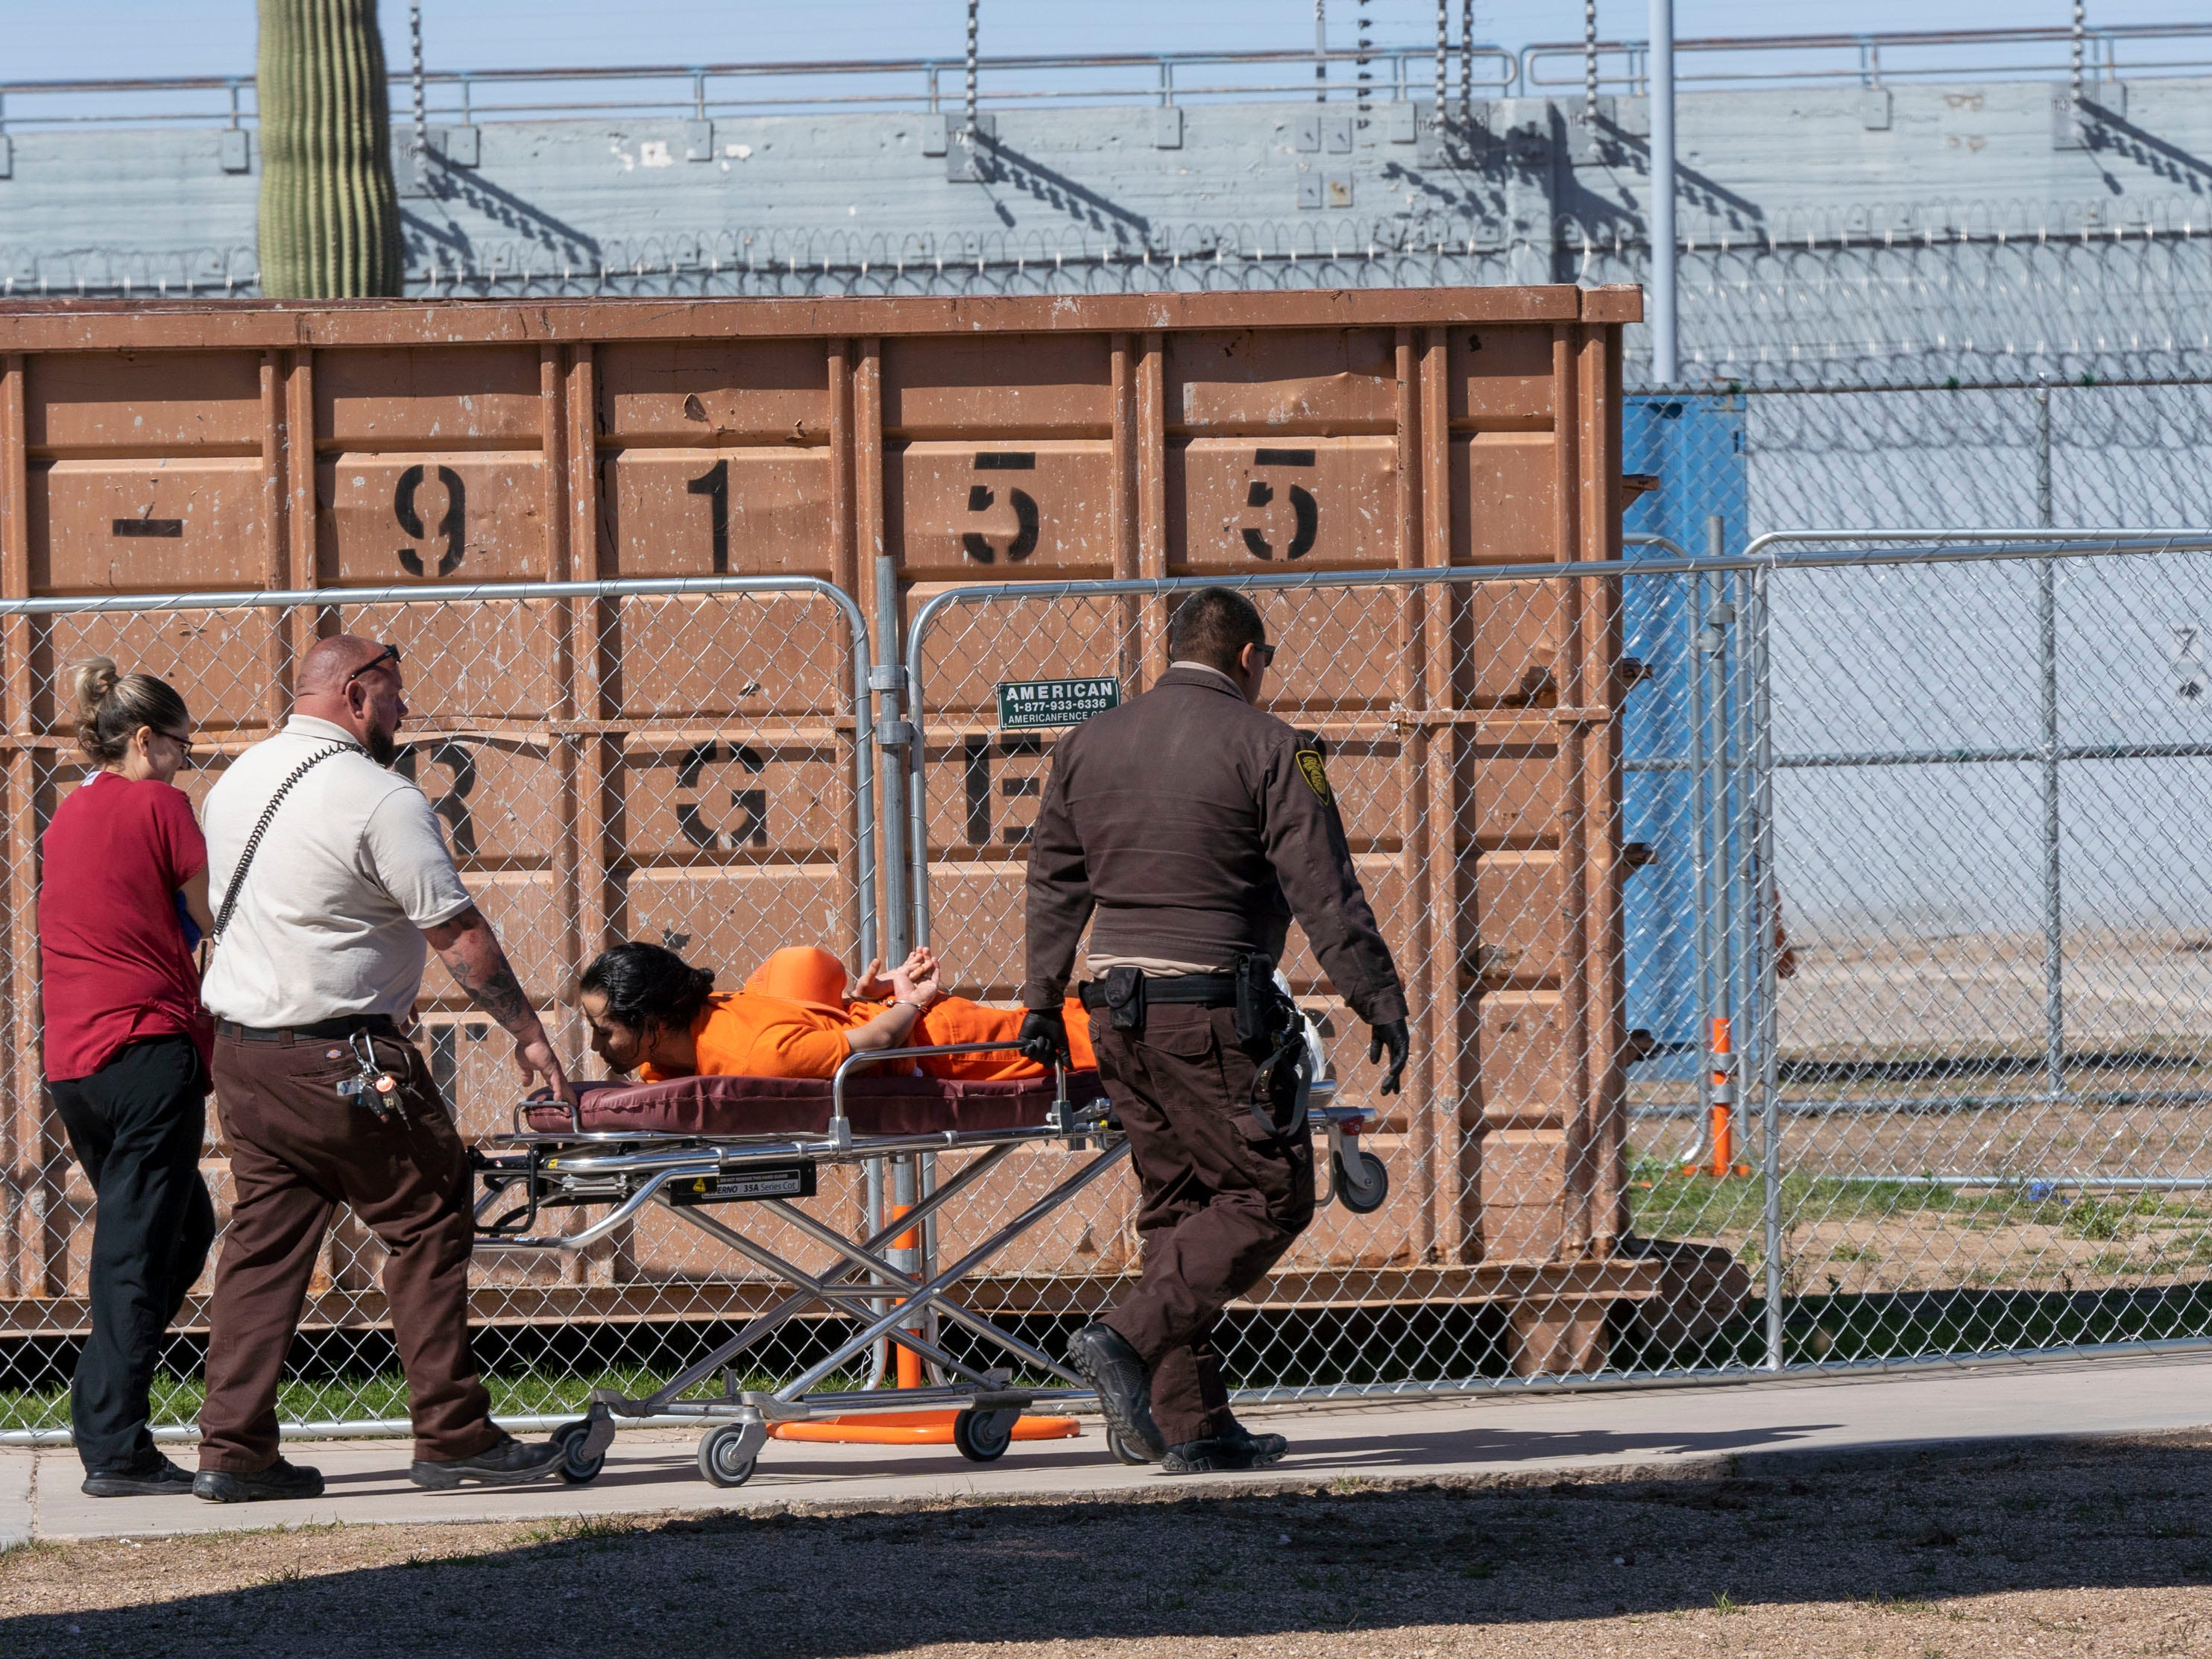 An inmate has been removed from one of the unit to get some medical attention, according to Carson A. McWilliams, Prison Operations Director of Arizona Department of Corrections. They are struggling with staffing due to decade-long wage freeze has led many corrections officers to leave jobs in Arizona's state prisons.